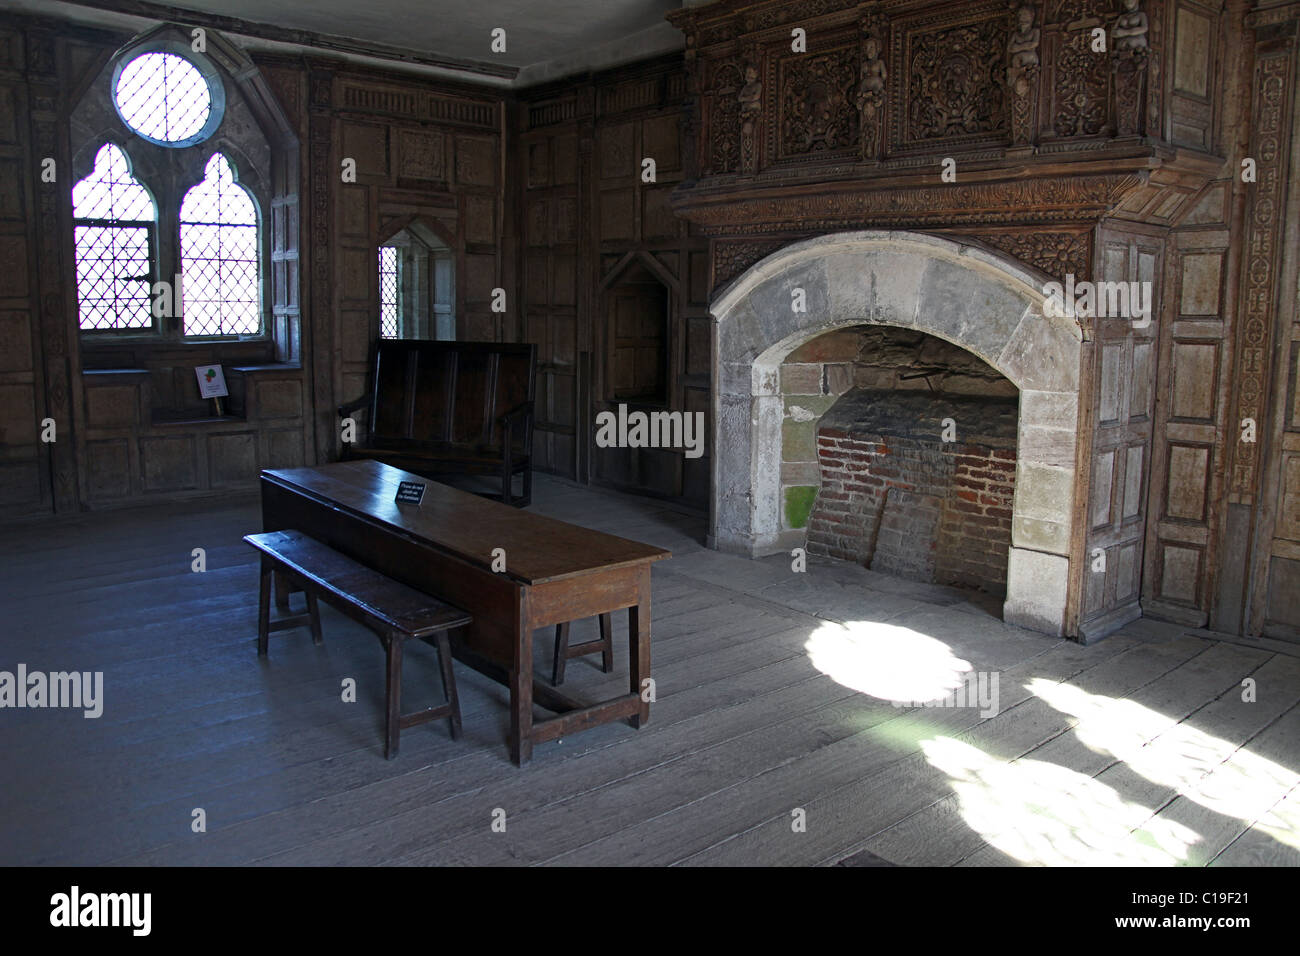 Open Hearth Fireplace And Decorative Window Inside The Great Hall At